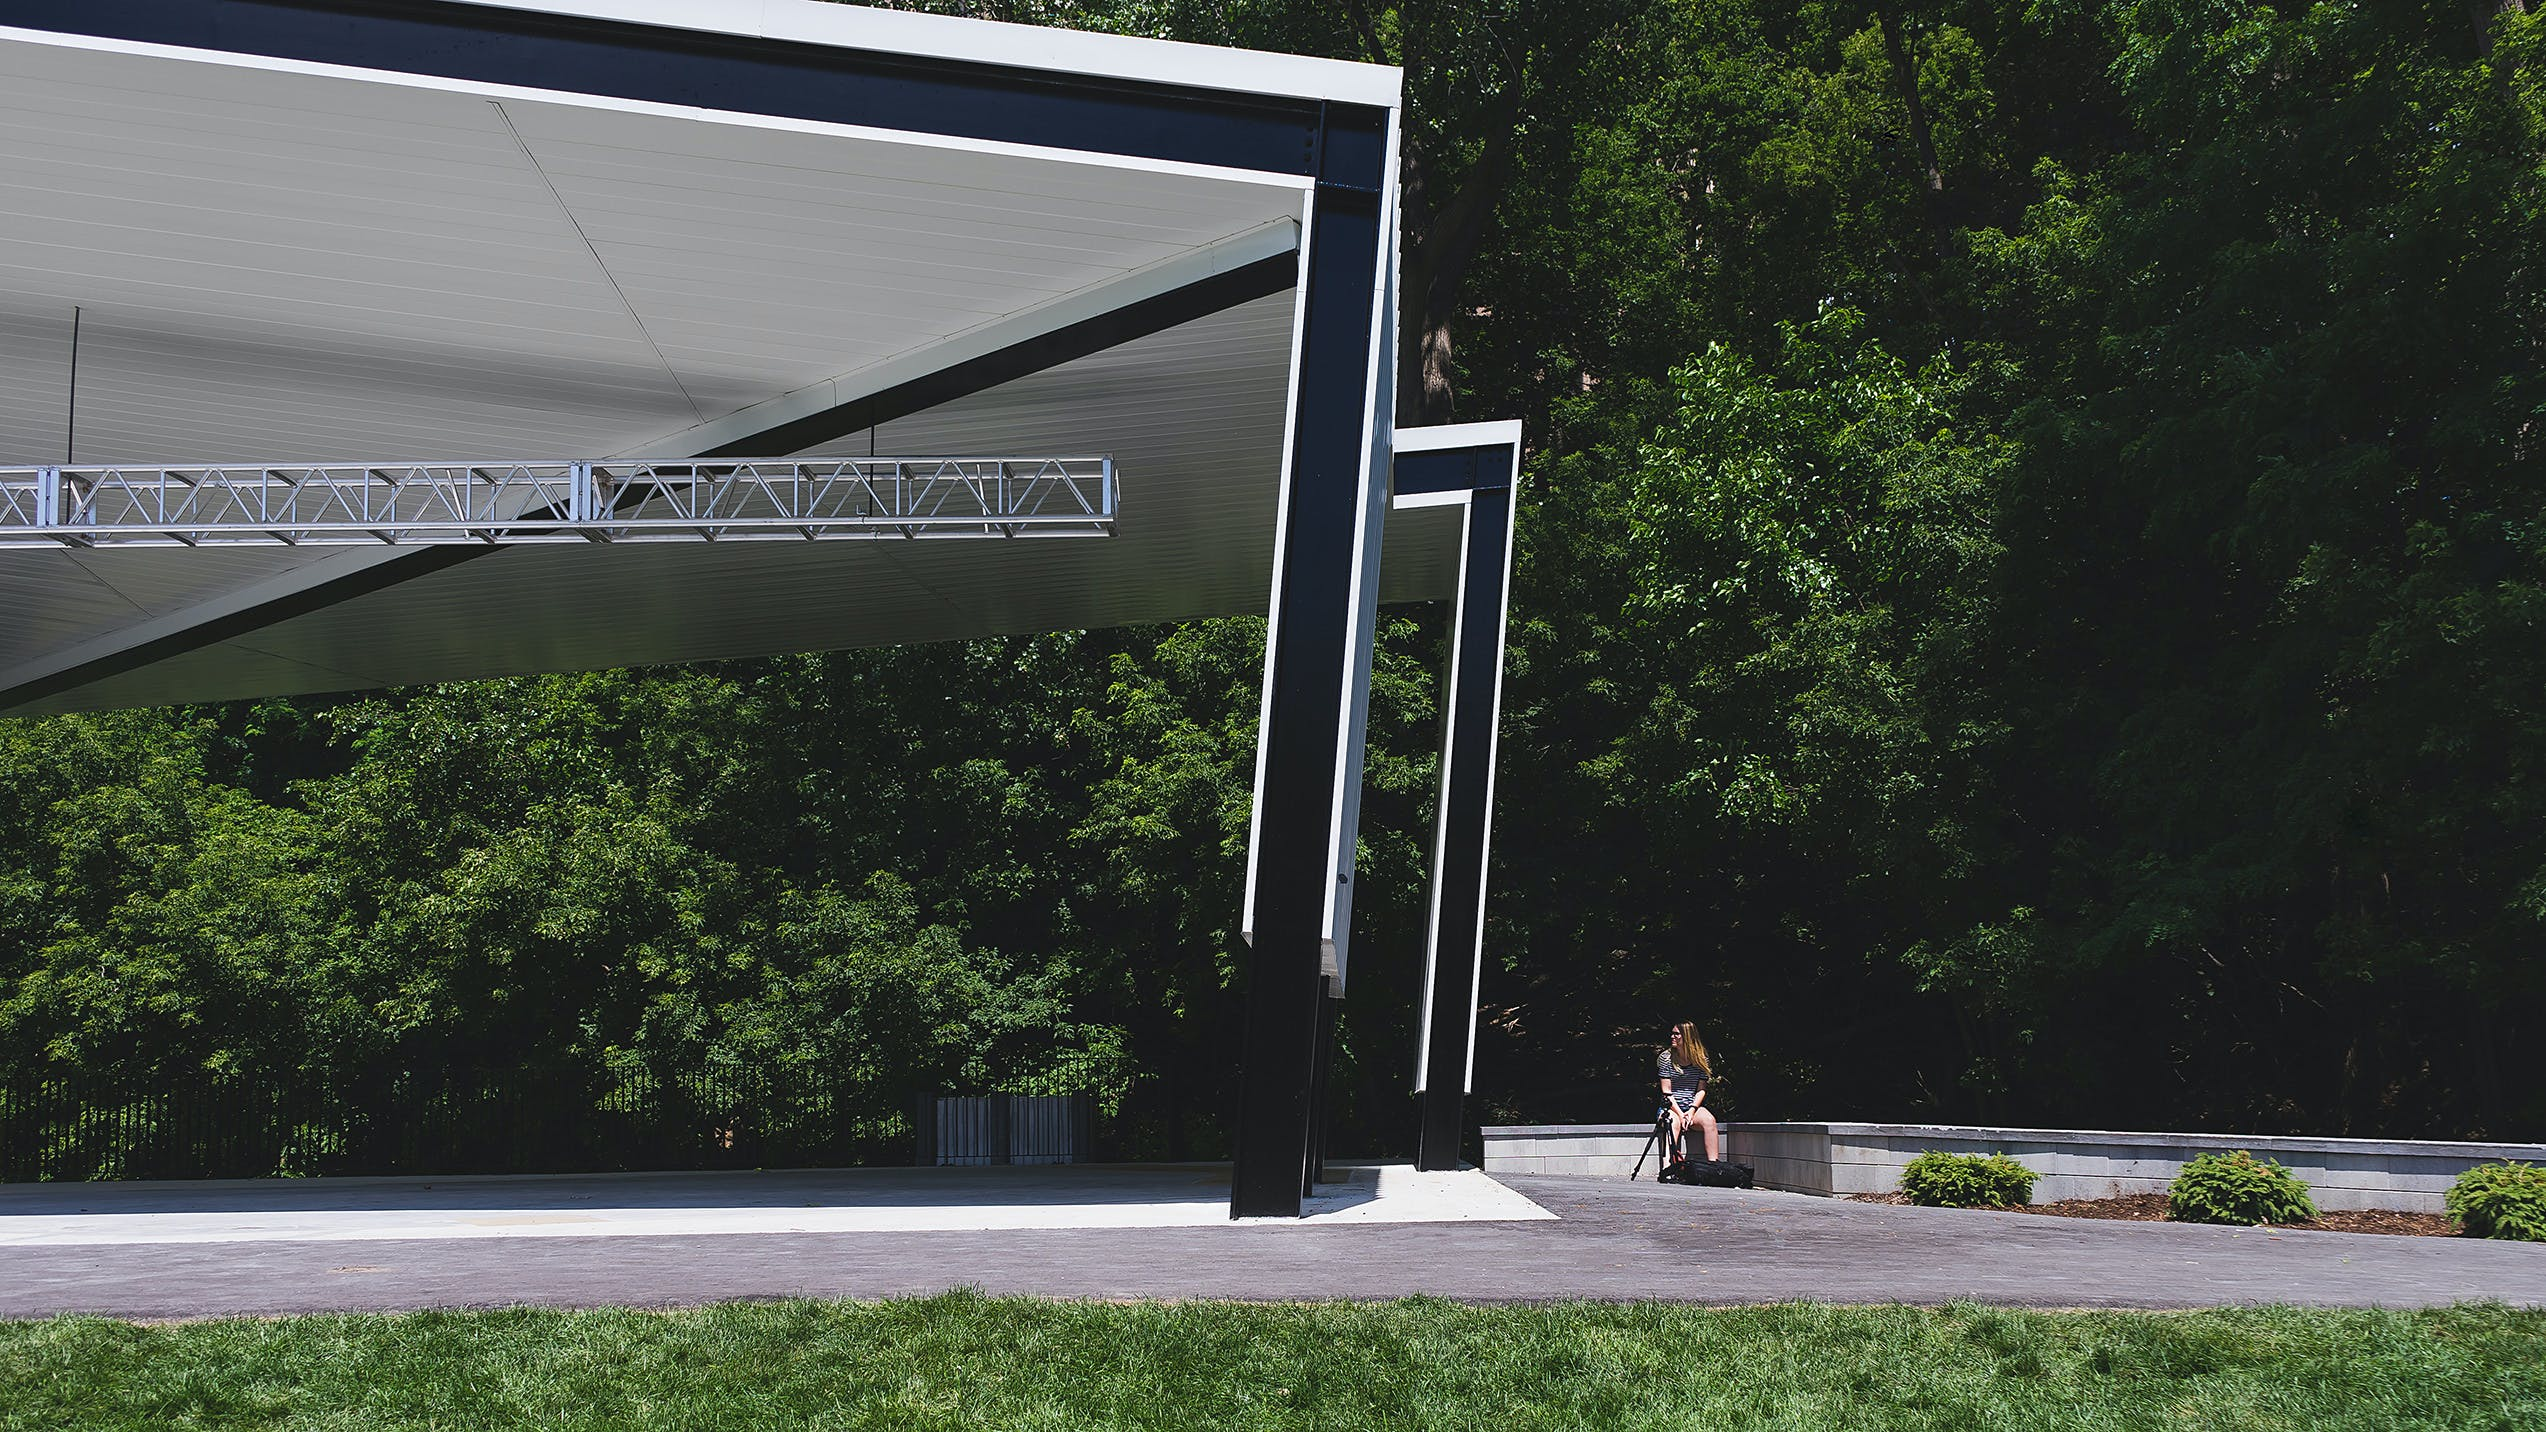 Meeting London's Canada 150 Pavilion in Harris Park Has Been Frustrating